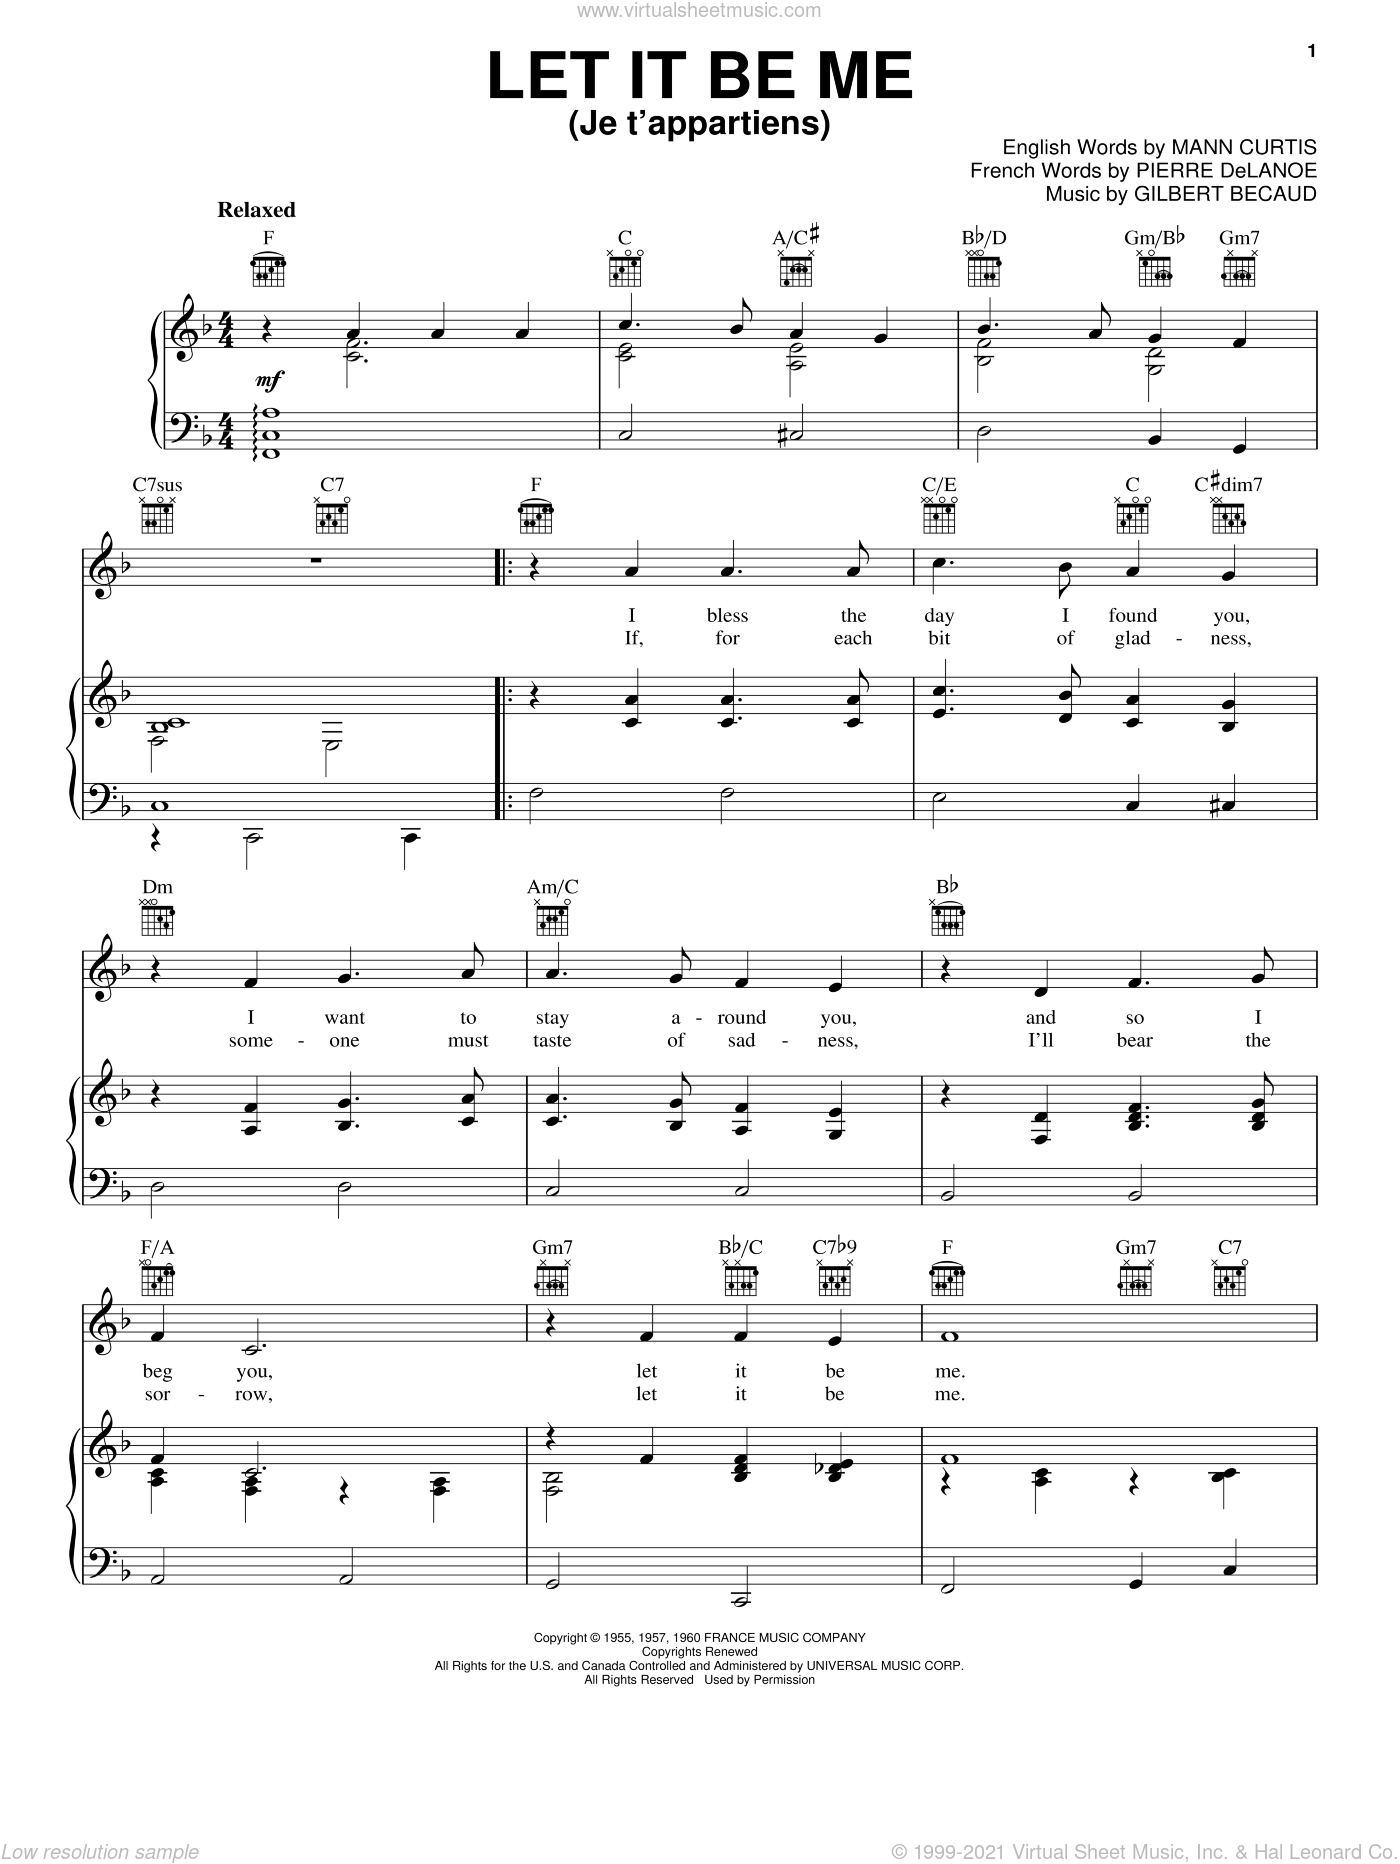 Let It Be Me (Je T'appartiens) sheet music for voice, piano or guitar by Pierre Delanoe, Elvis Presley, Gilbert Becaud and Mann Curtis. Score Image Preview.